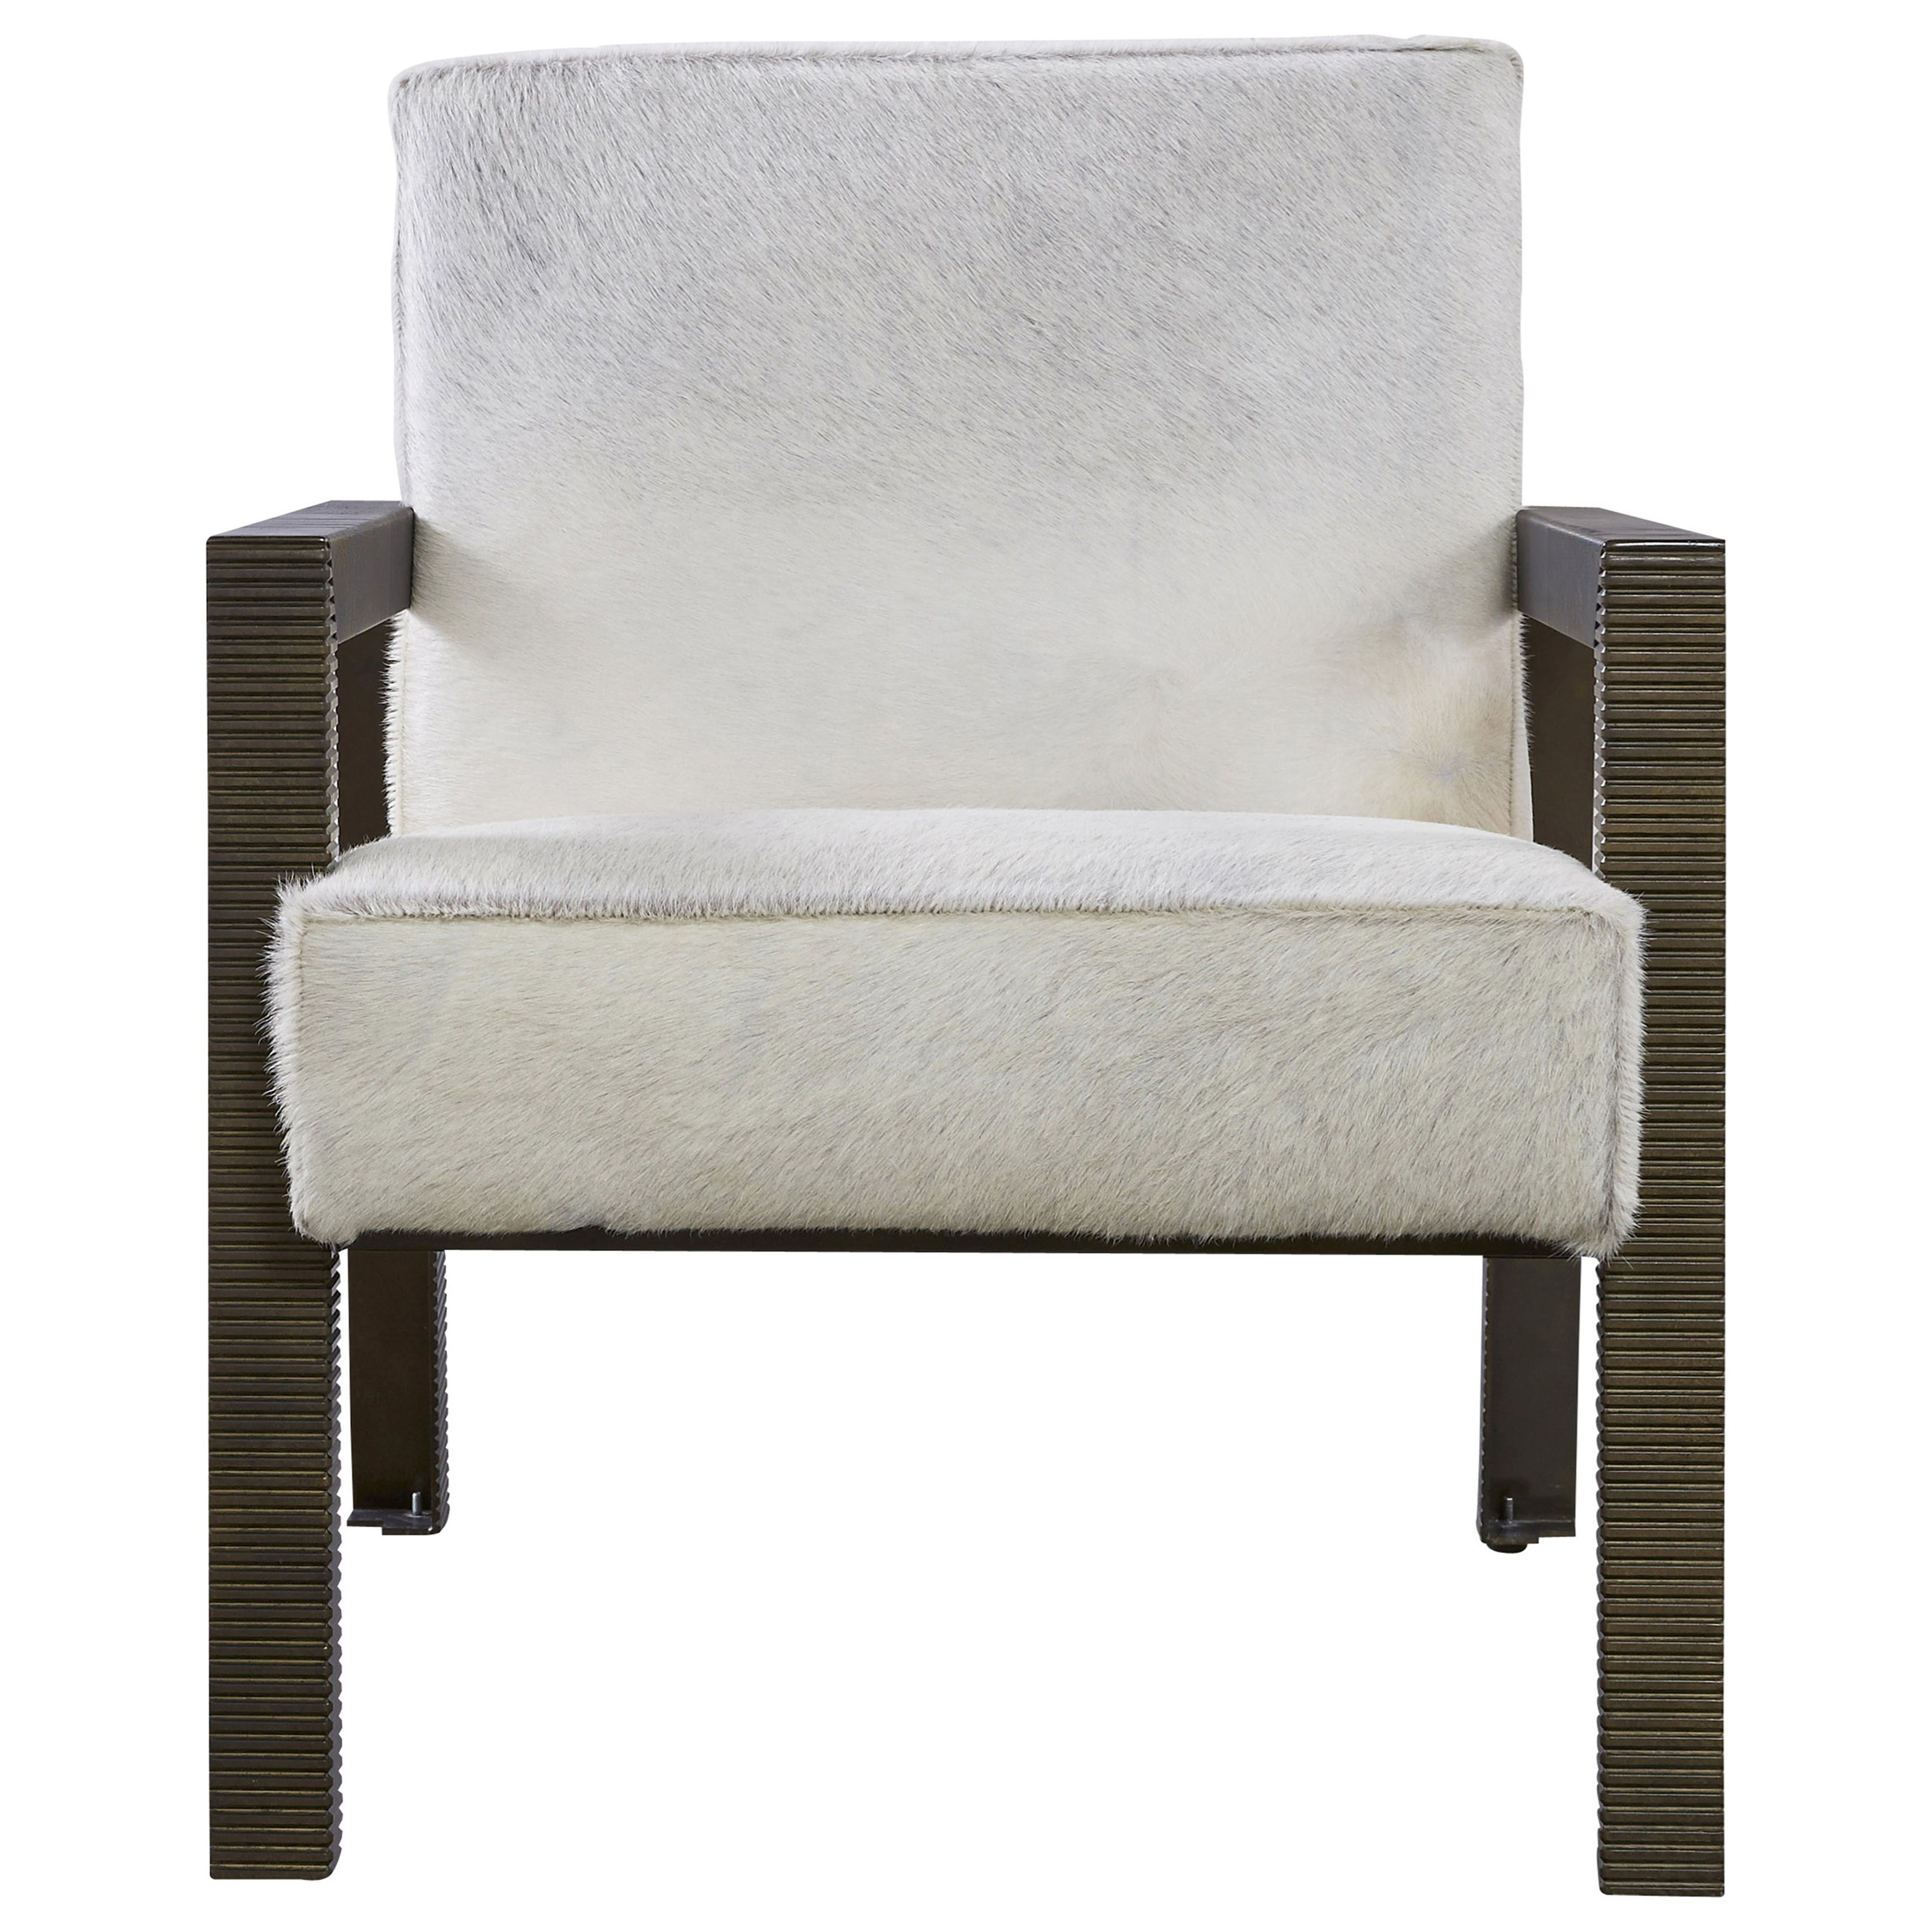 Accents Garret Accent Chair by Universal at Baer's Furniture